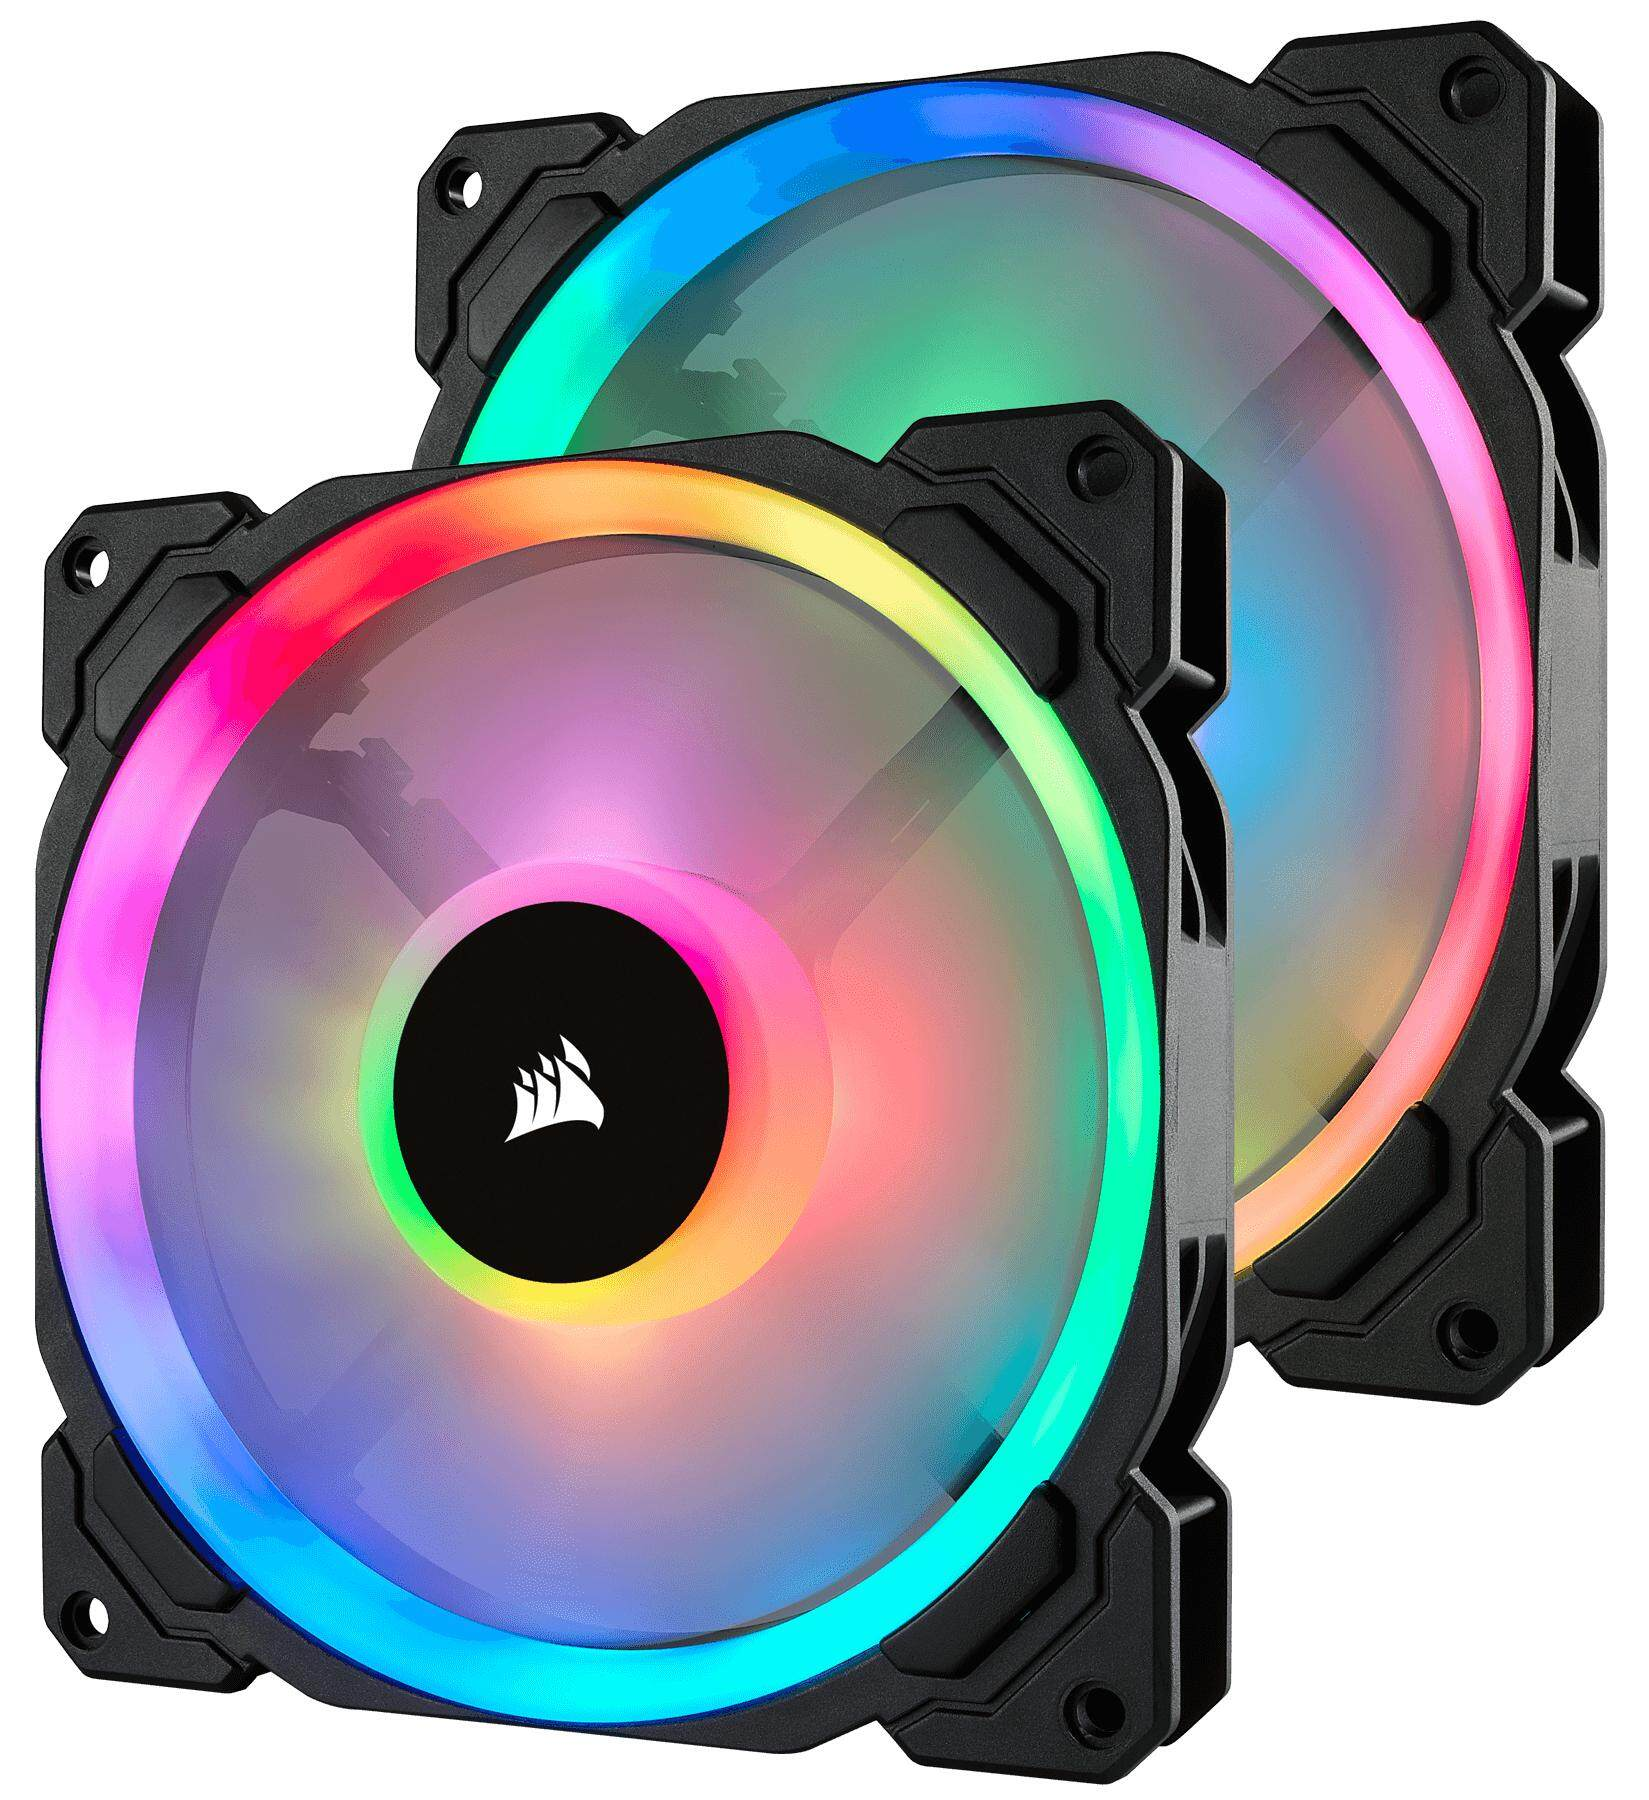 Corsair Ll140 Rgb 140mm Dual Light Loop Rgb Led Pwm Fan - 2 Fan Pack With Lighting Node Pro By Mycom Seacon.